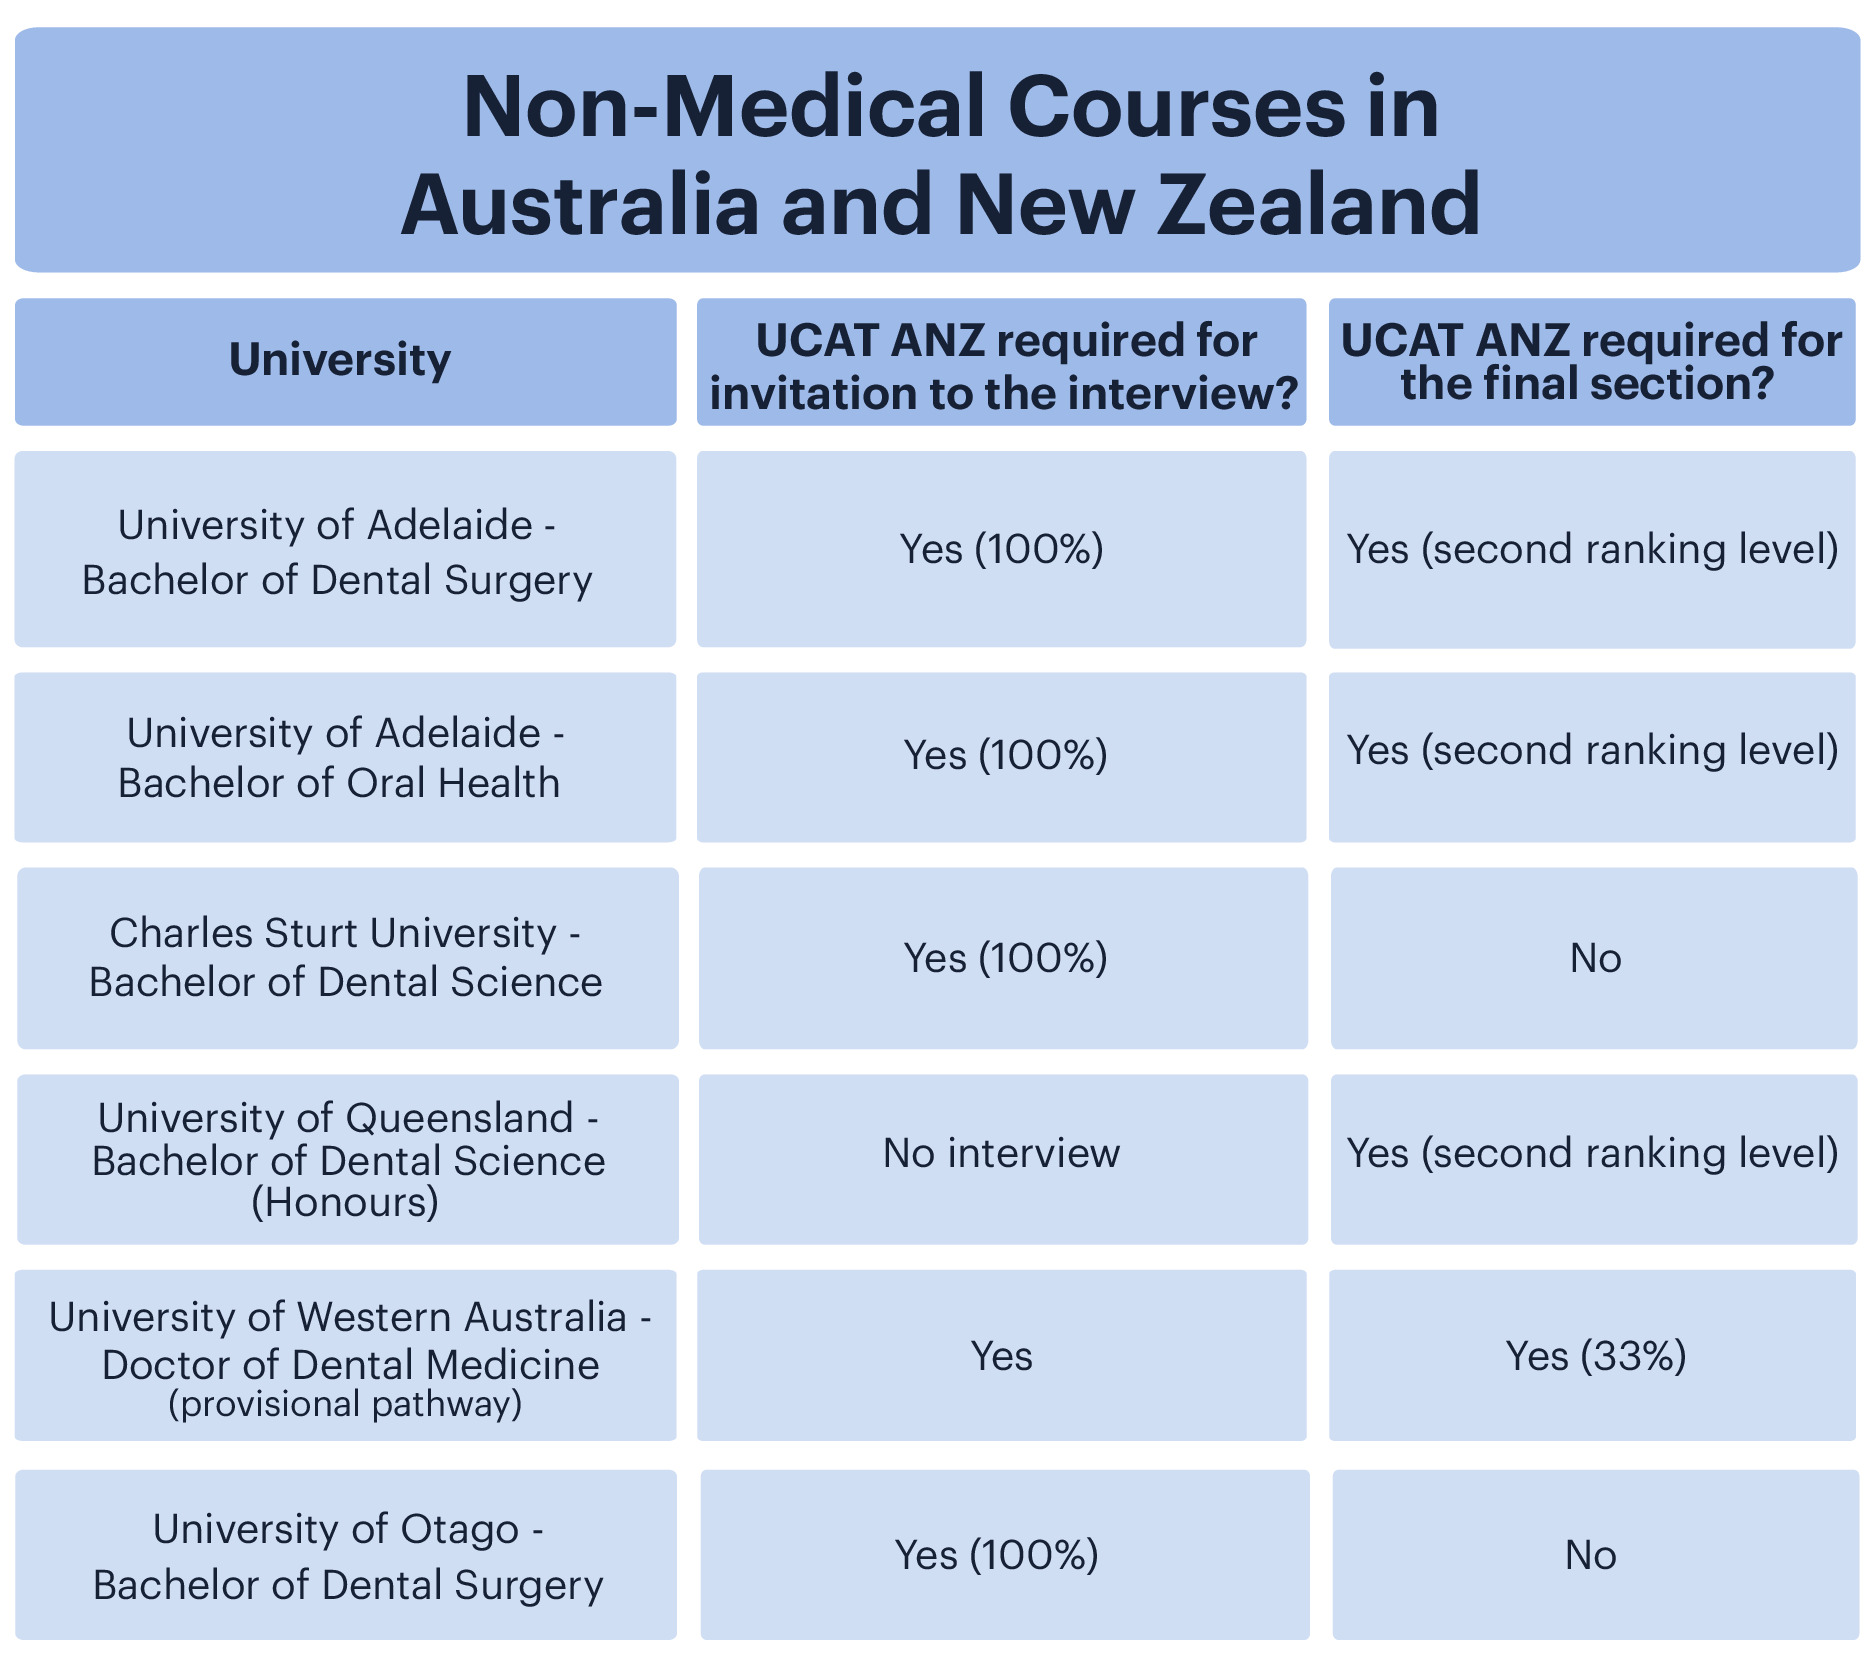 A table showing the UCAT ANZ requirements for invitation to the interview and/or final selection for non-medical courses in Australia and New Zealand.